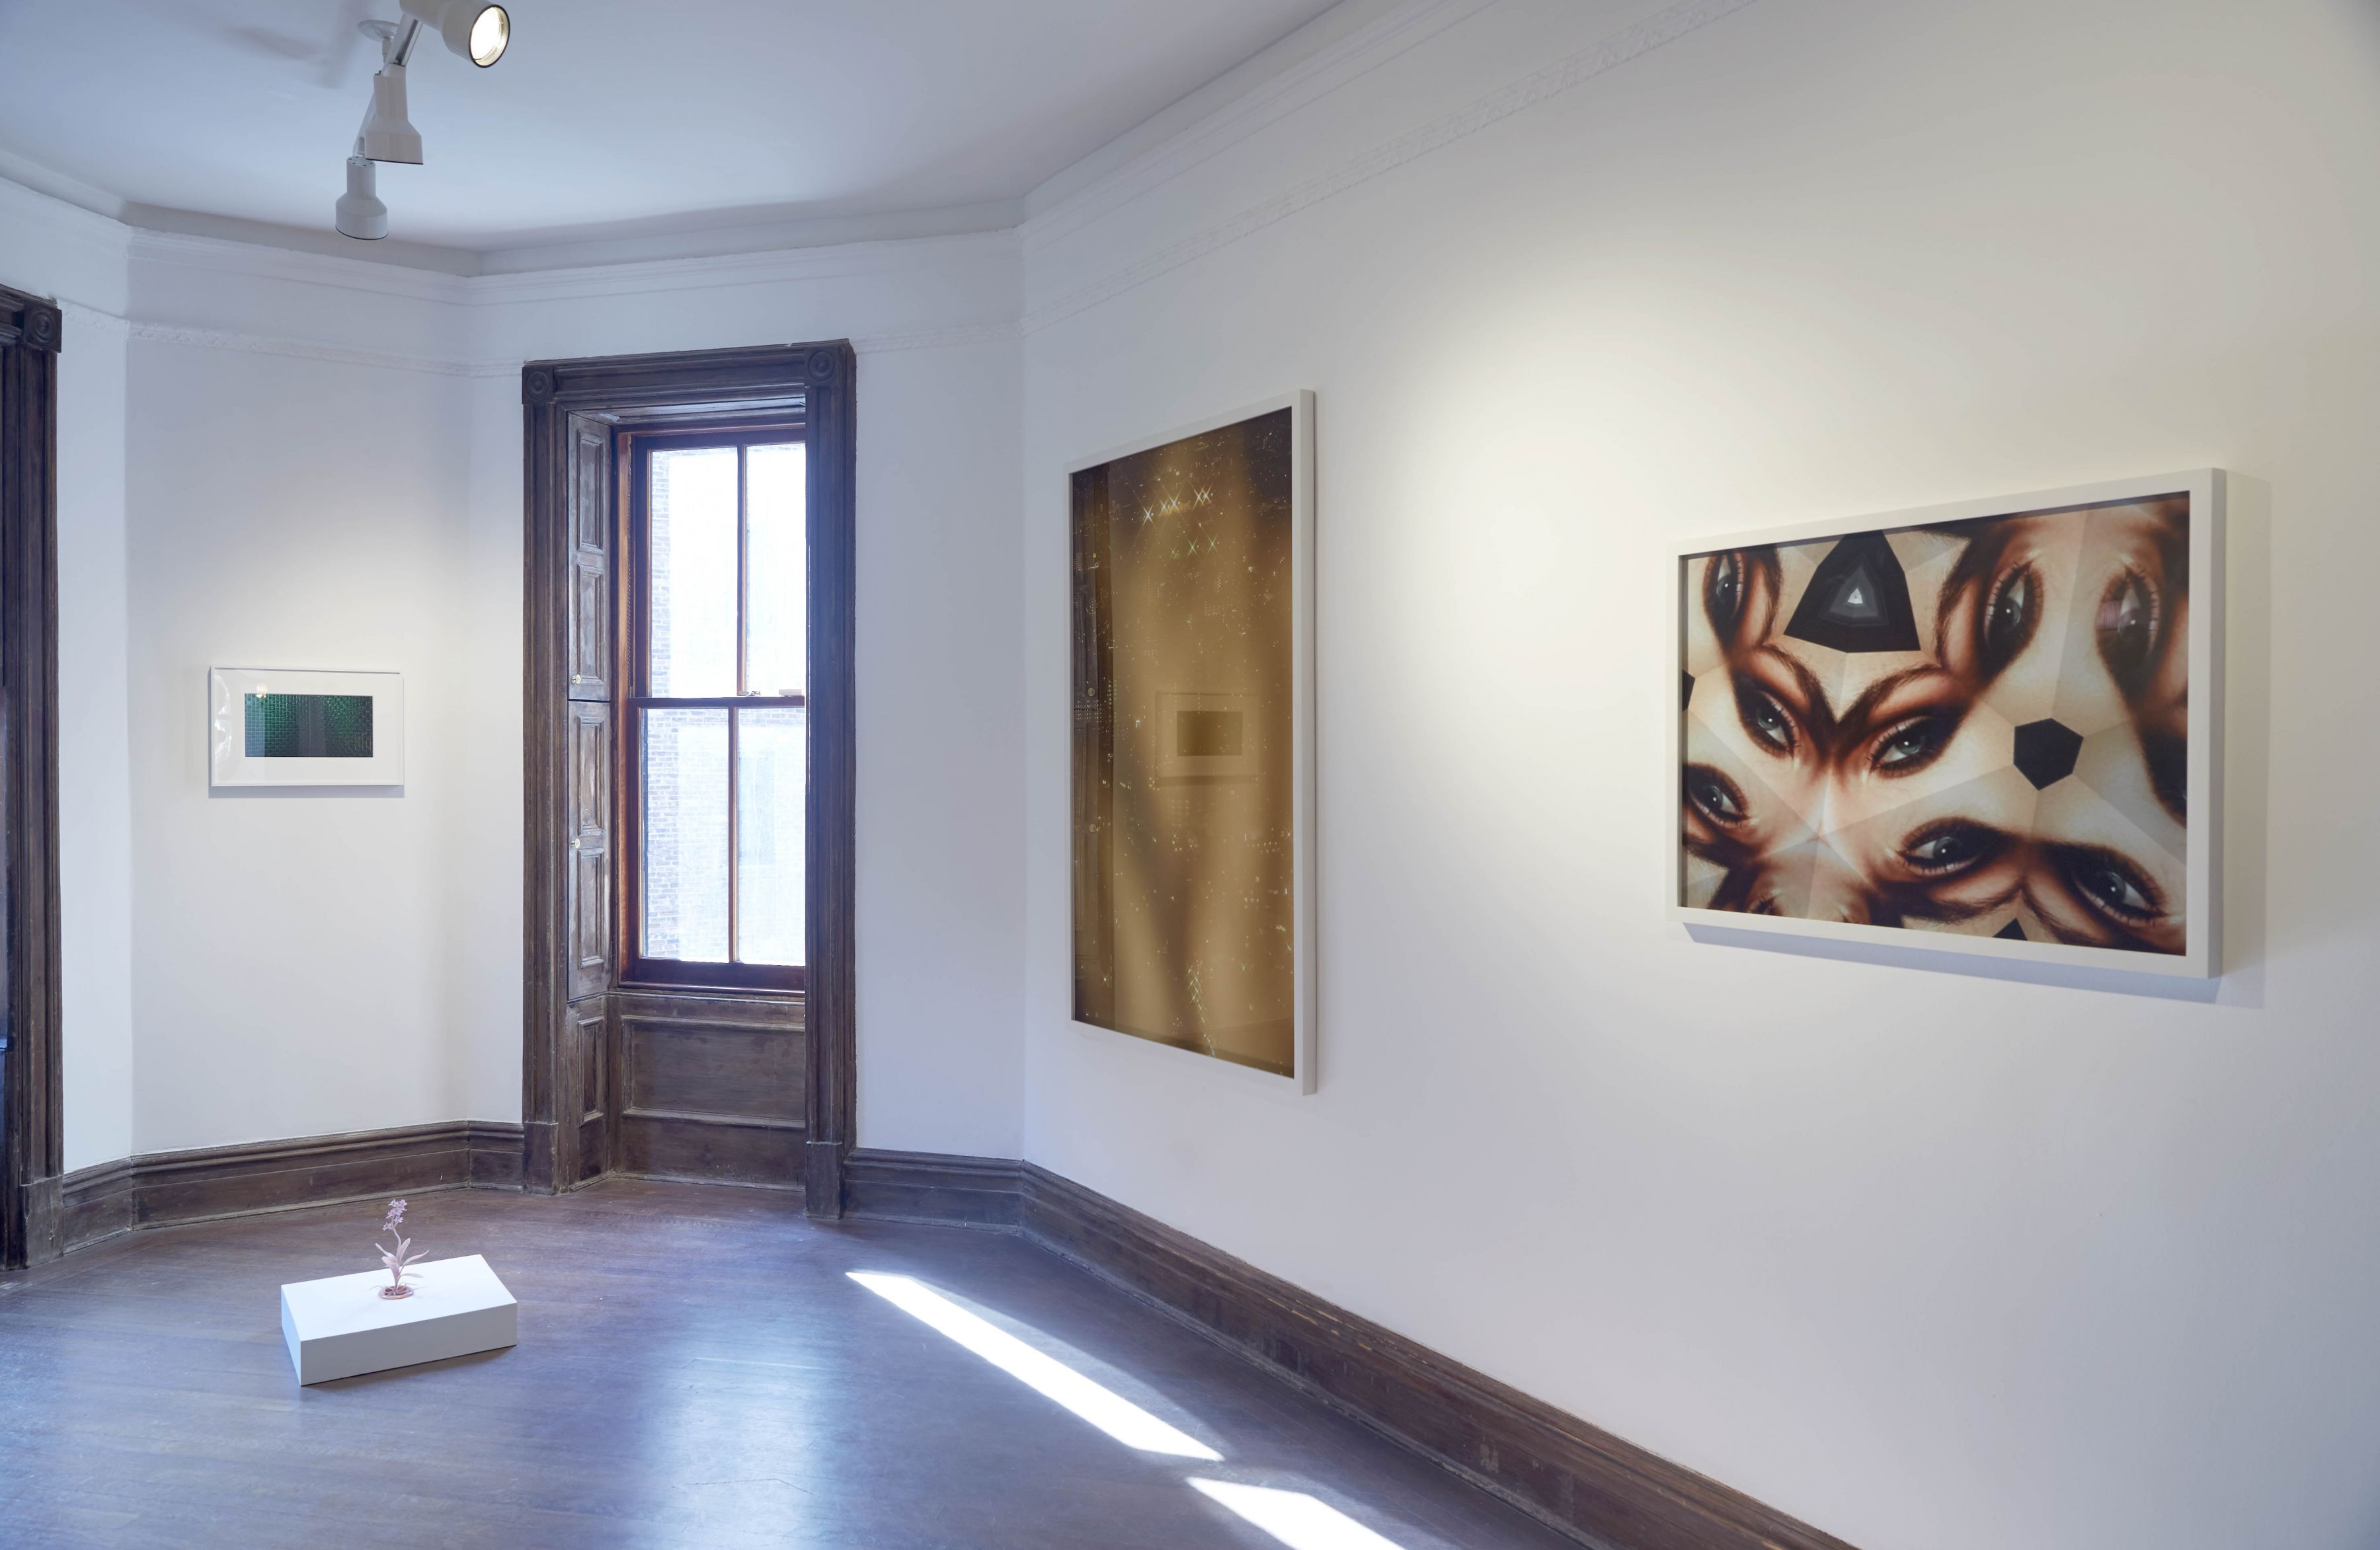 Something Beautiful(Installation View), Marianne Boesky Gallery (Uptown), 2014